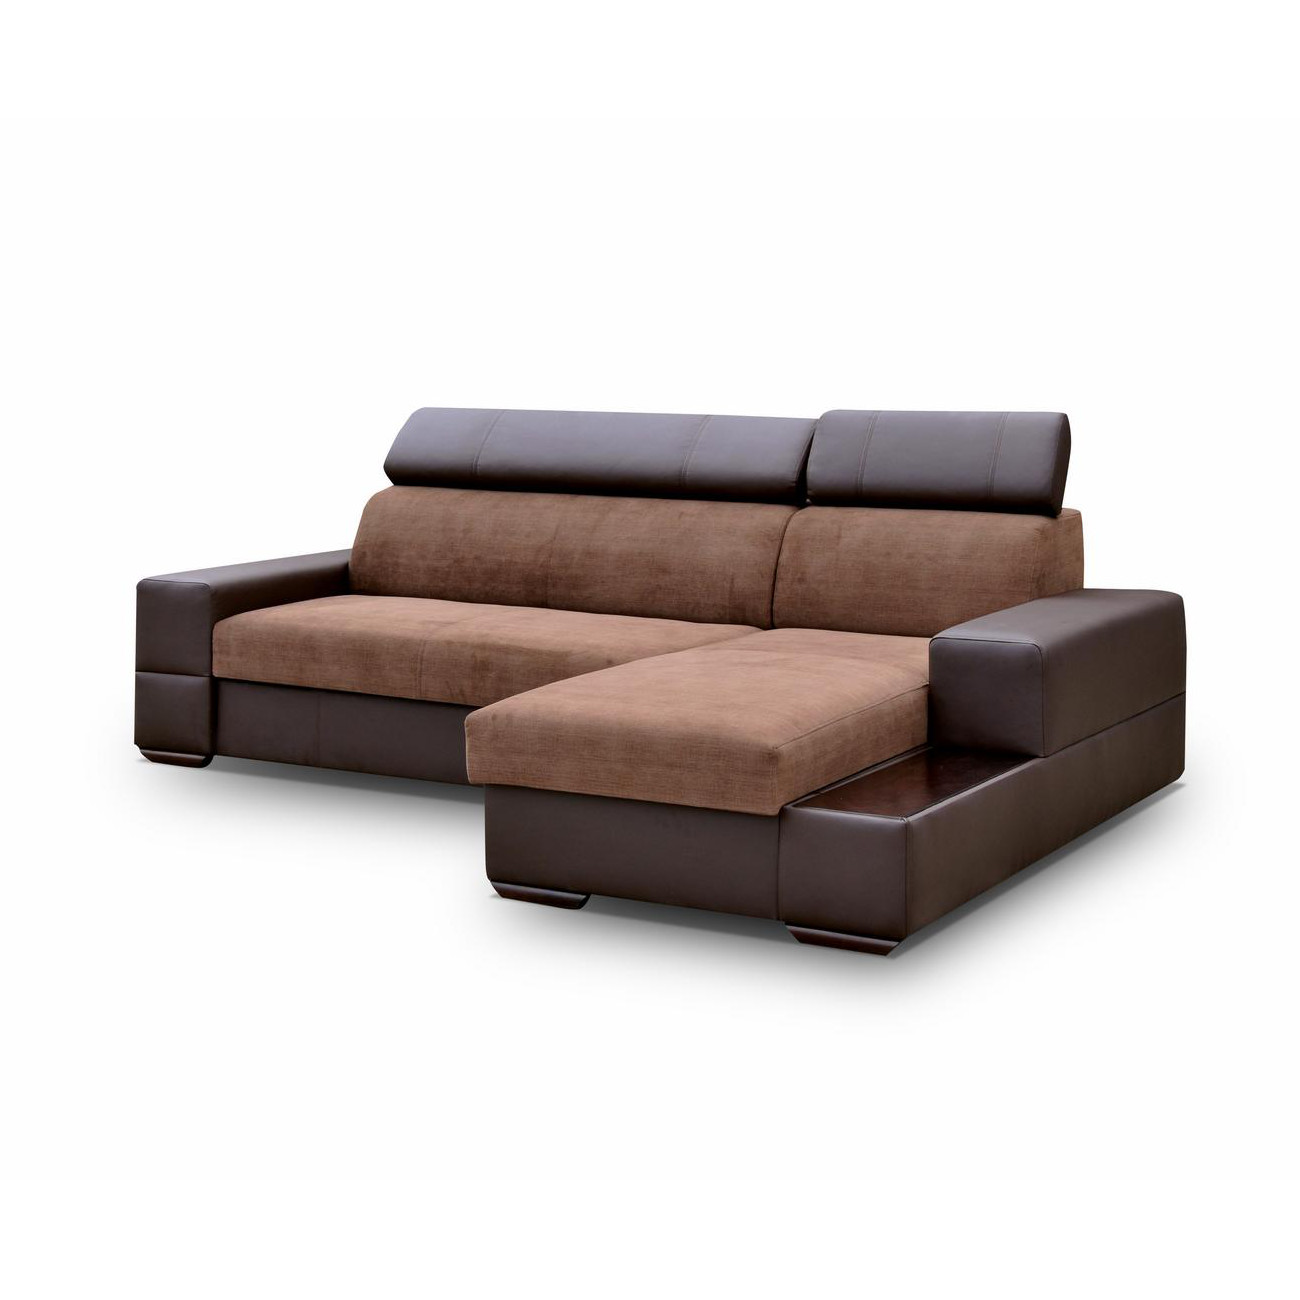 ecksofa sofa eckcouch mit bettkasten polstersofa mit stauraum braun couch capri ebay. Black Bedroom Furniture Sets. Home Design Ideas